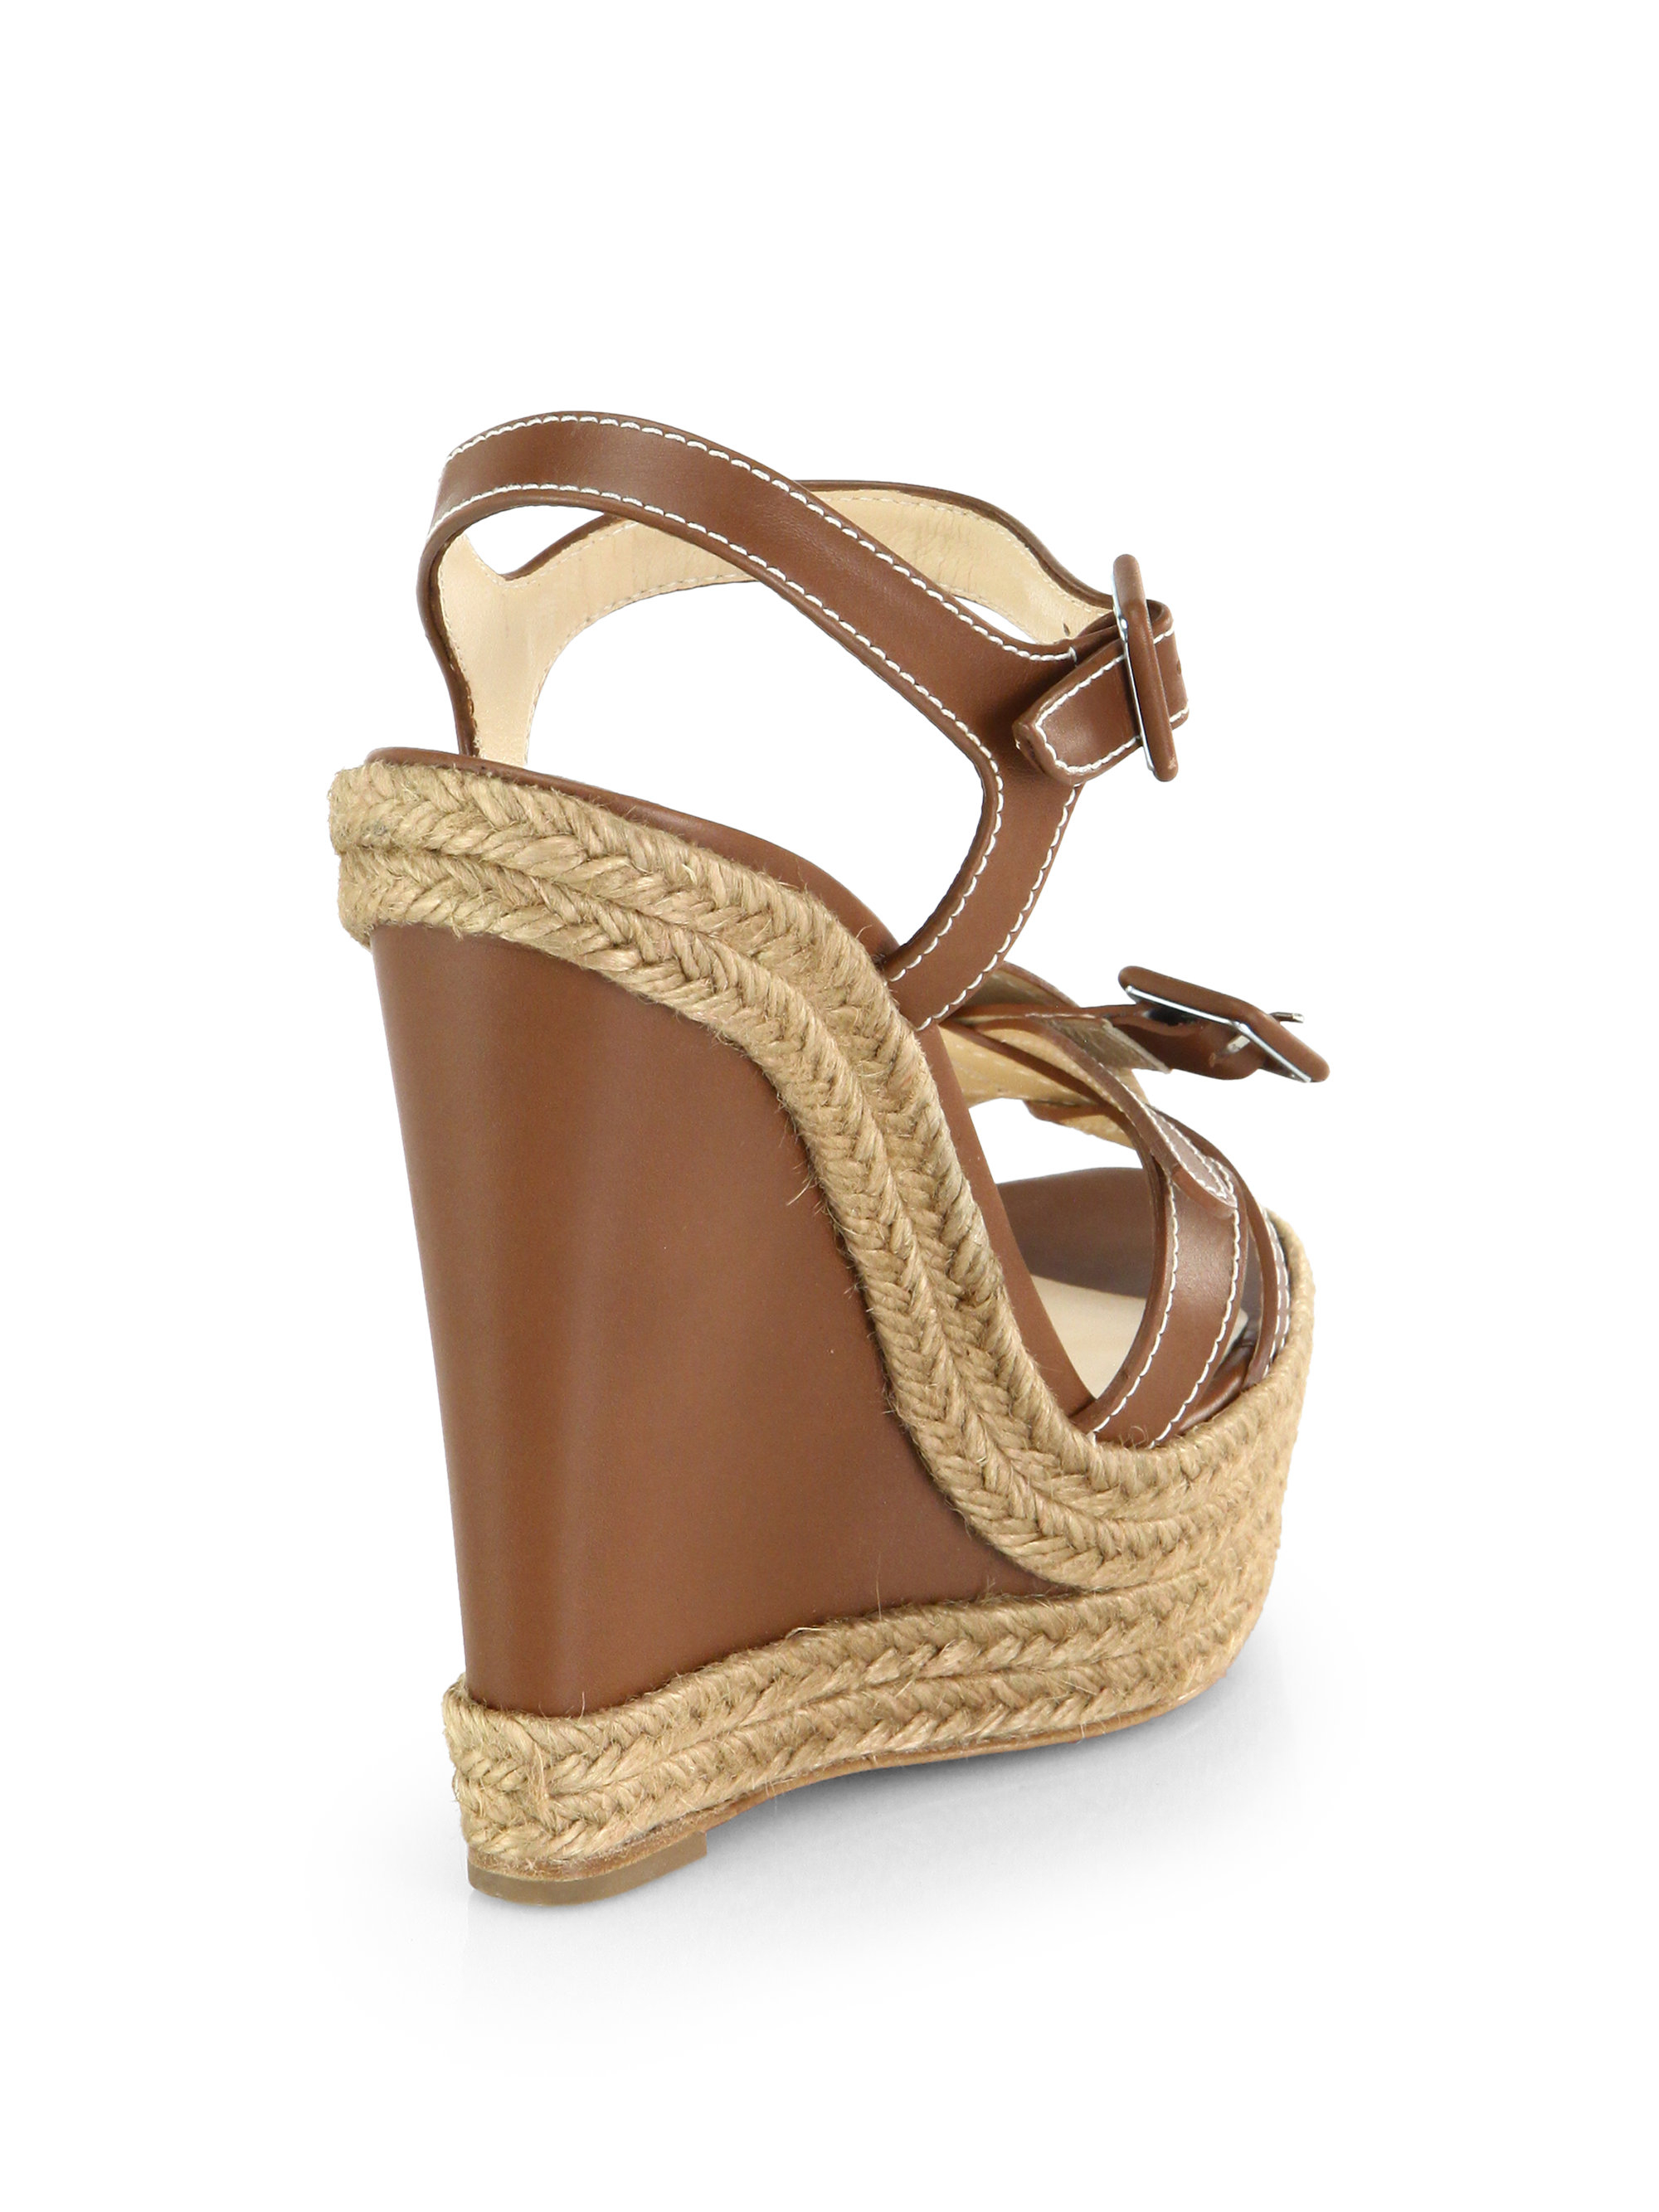 louboutin shoes for men - christian louboutin wedges Brown leather | The Little Arts Academy